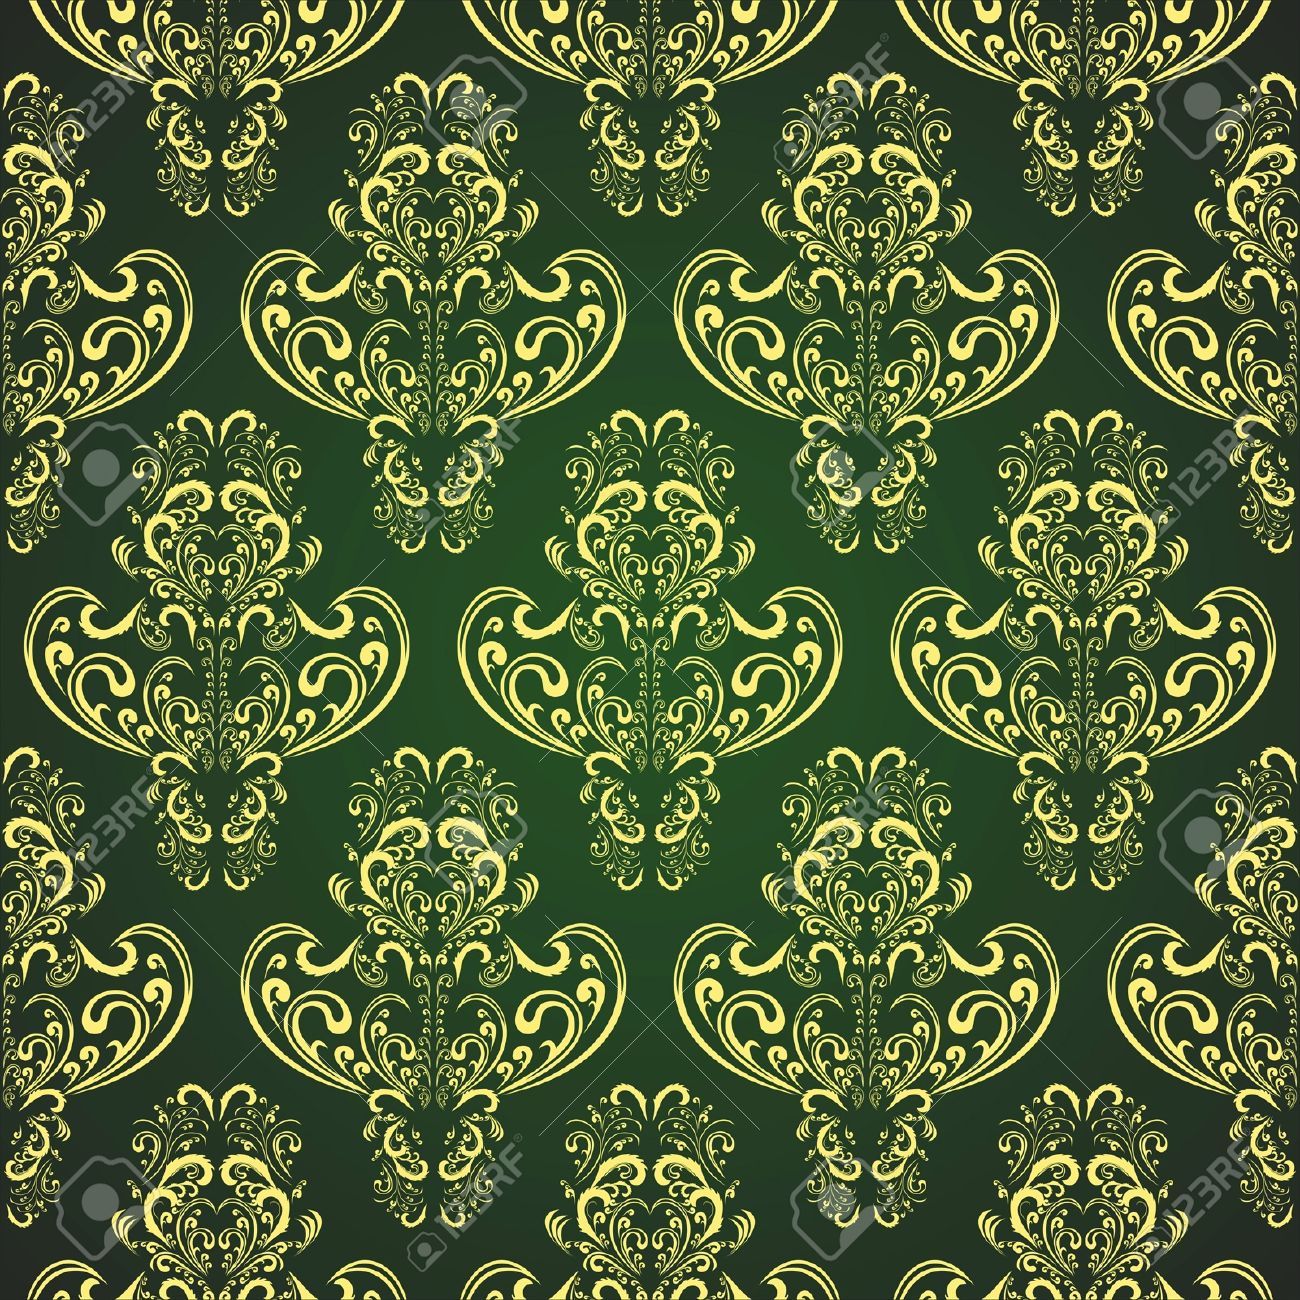 Seamless Wallpaper In Style Retro Gold On Rifle-green Royalty Free